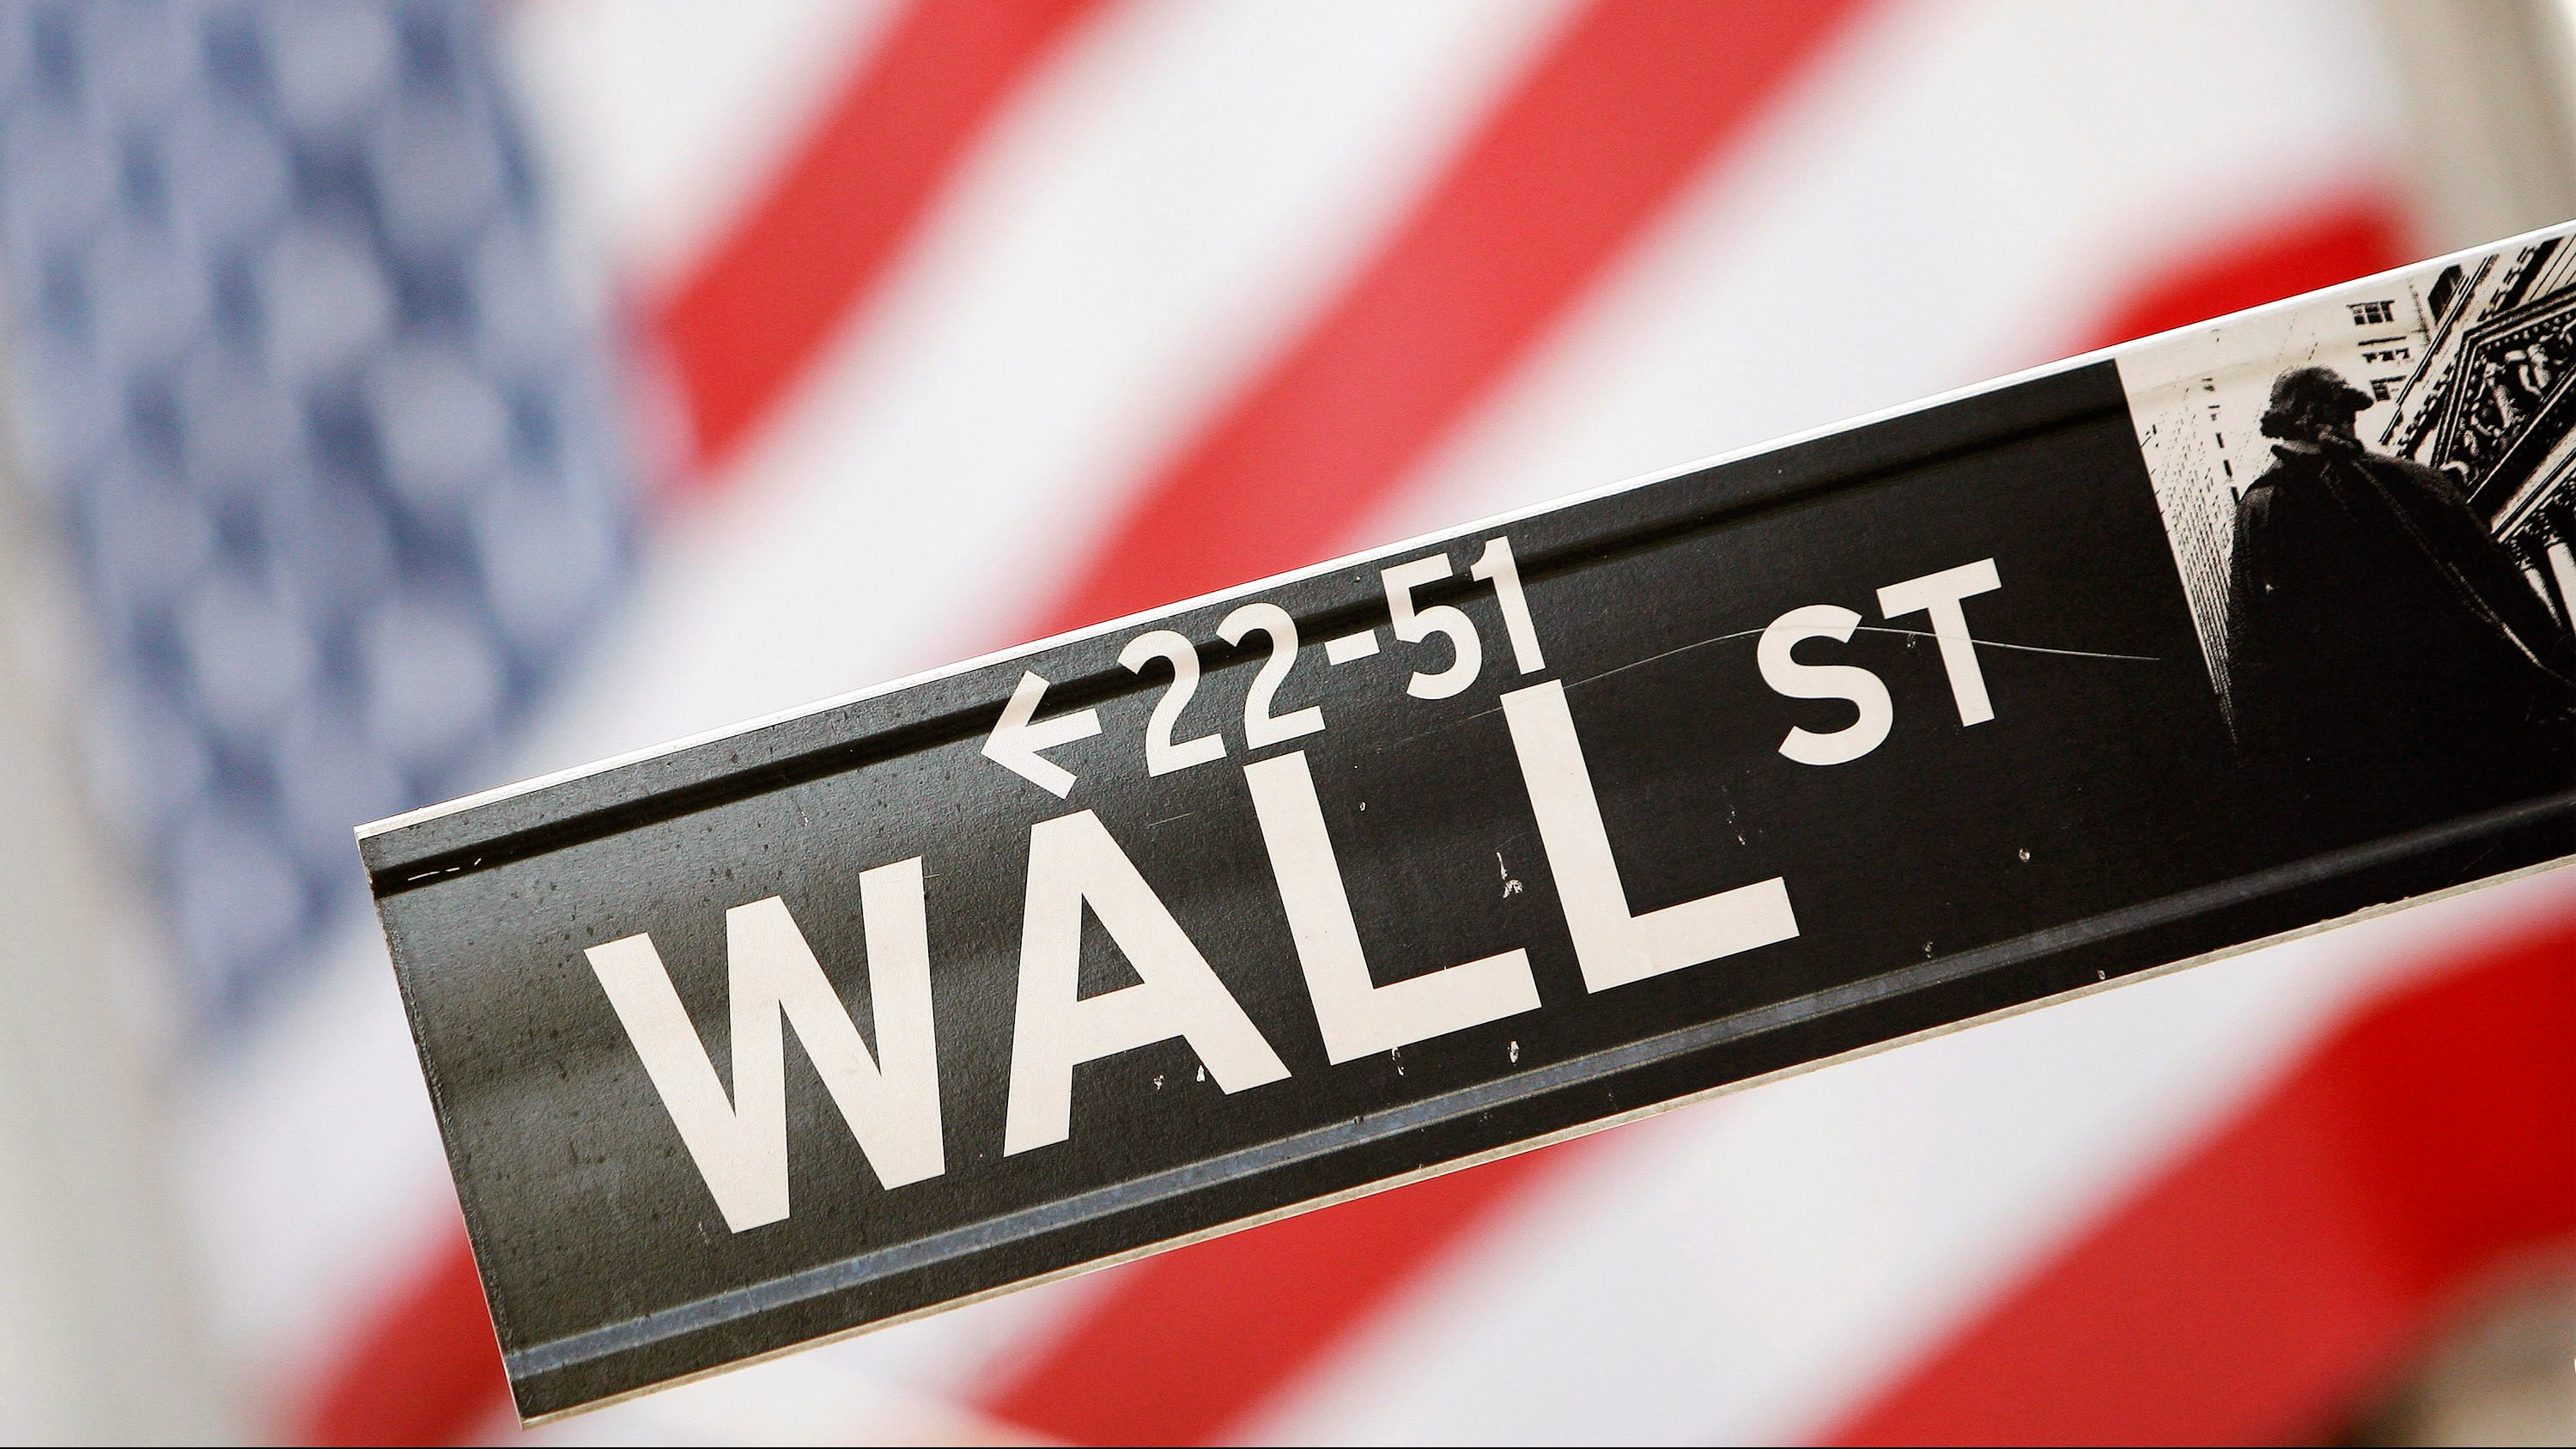 Wall Street street sign with American flag behind it.